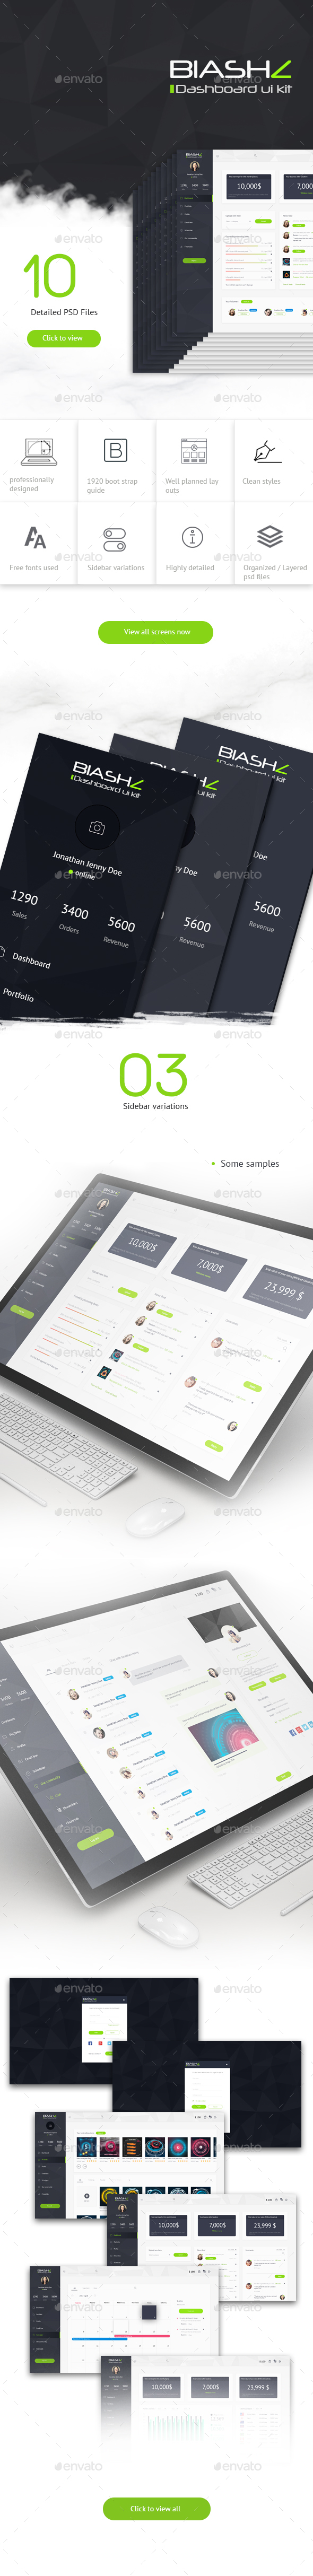 Blashz Dashboard UI Kit - User Interfaces Web Elements